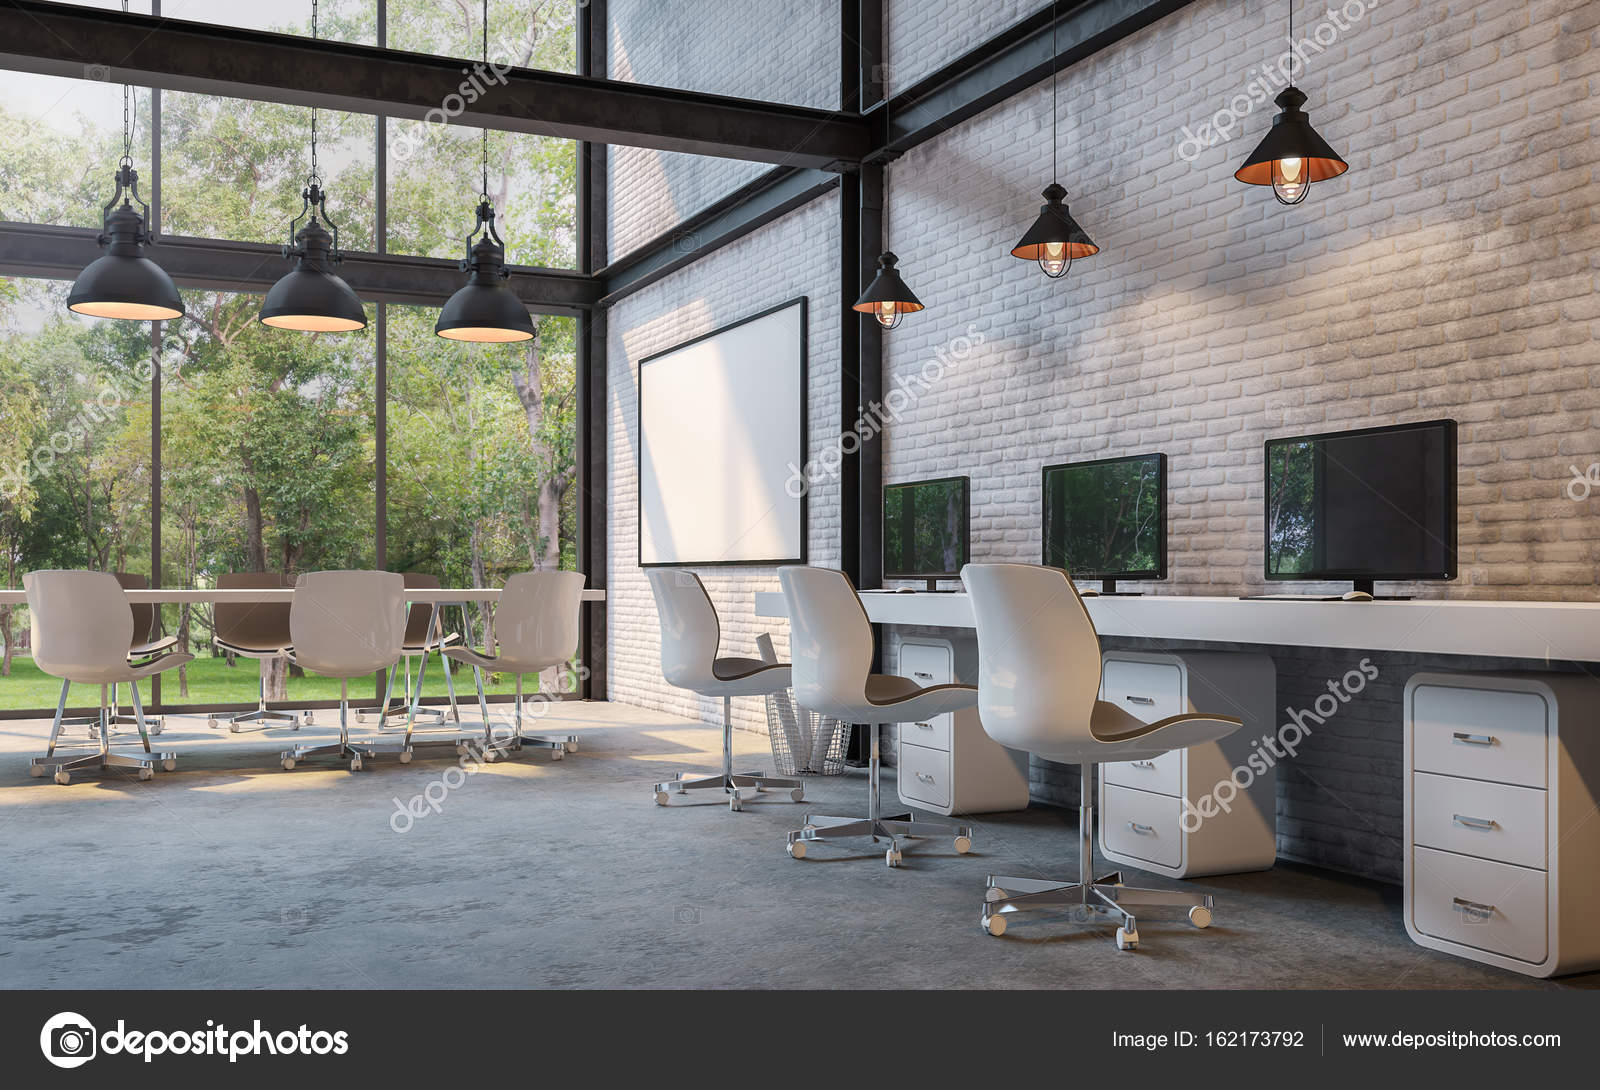 dropbox seattle office mt. Loft Style Office. Office 3d Rendering Image \\u2014 Stock Photo O Dropbox Seattle Mt W